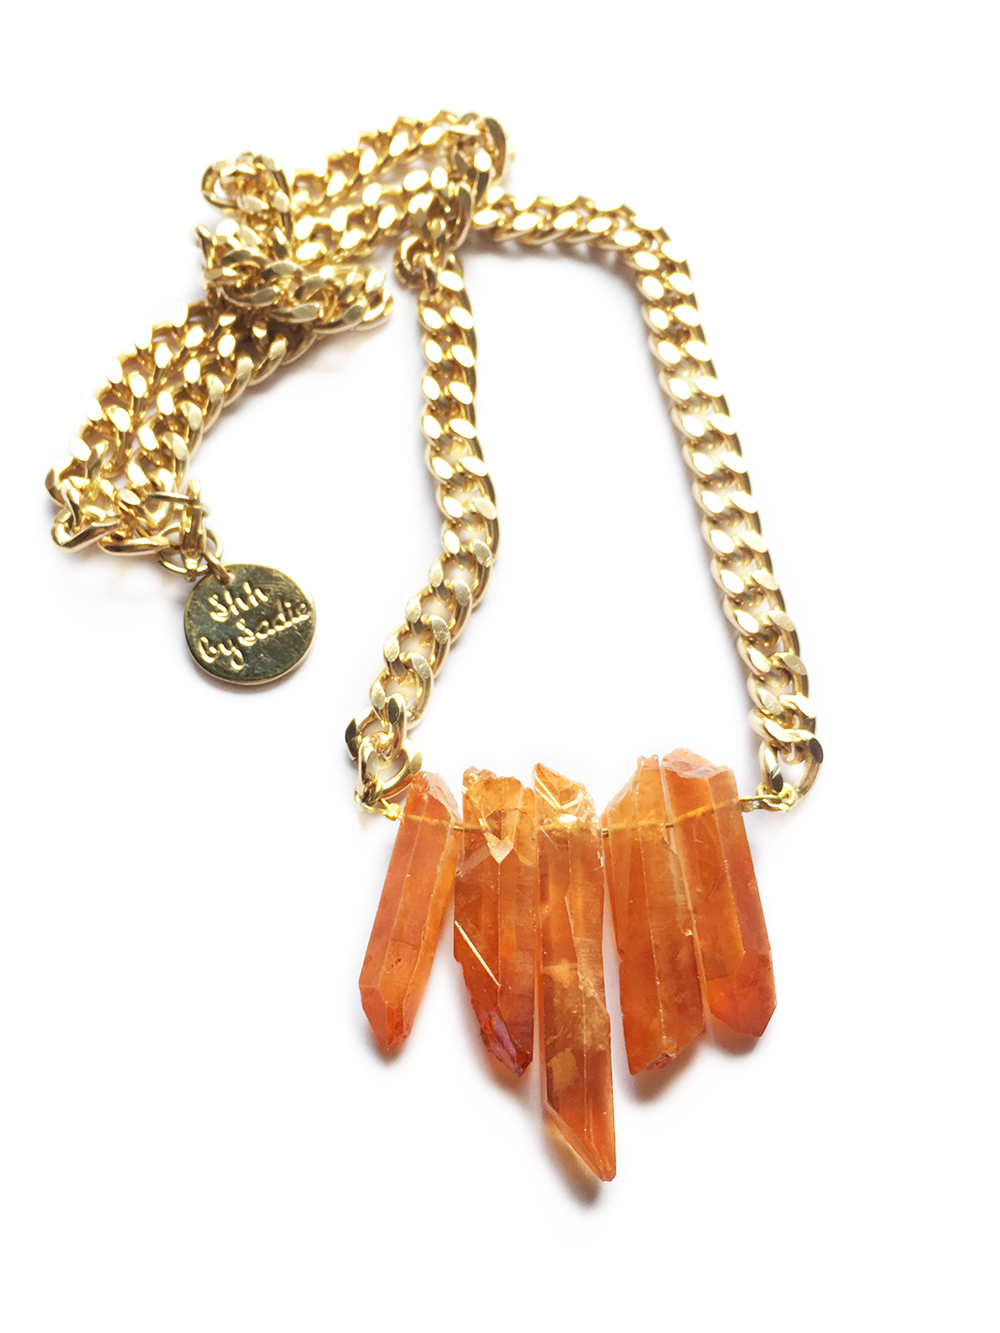 Amber crystal quartz necklace handmade in UK by shh by sadie designer jewellery